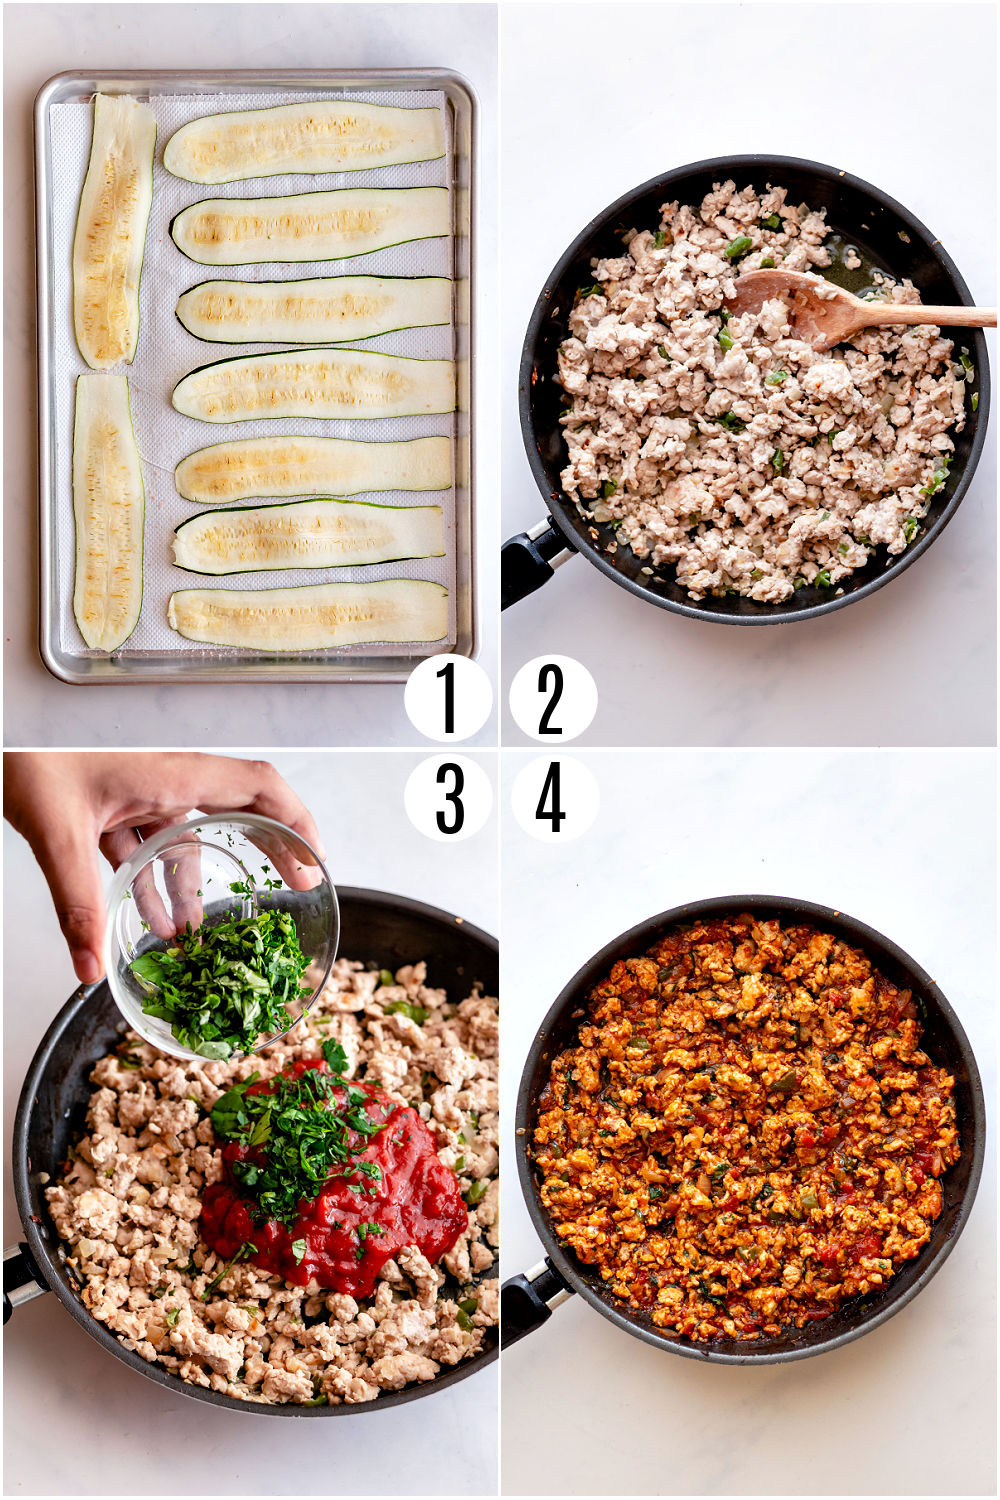 Step by step photos showing how to prepare zucchini lasagna.